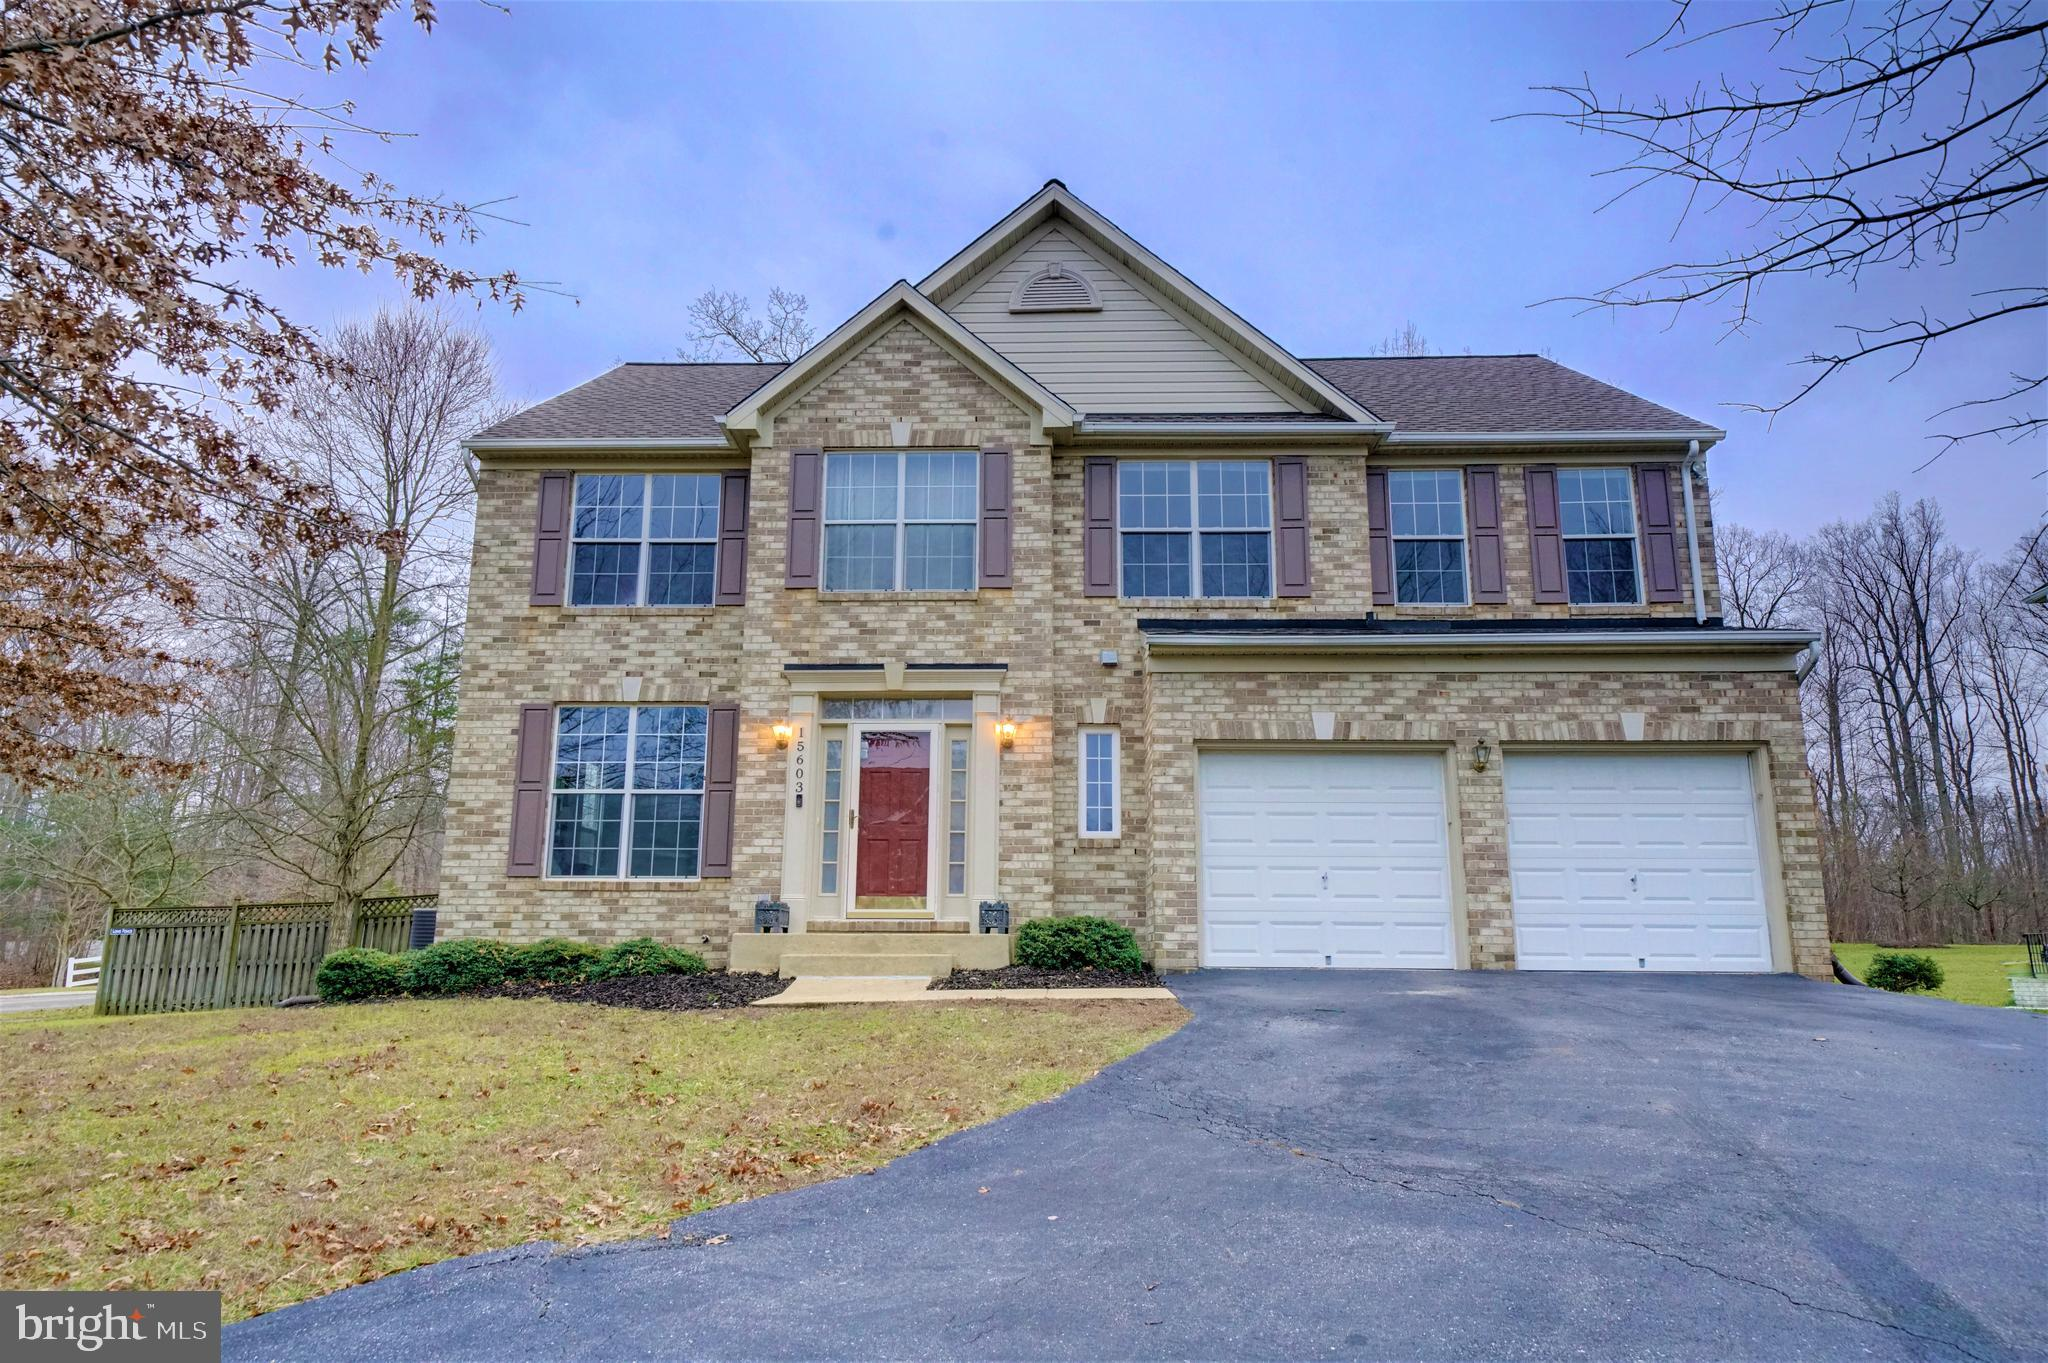 15603 OVERCHASE LANE, BOWIE, MD 20715